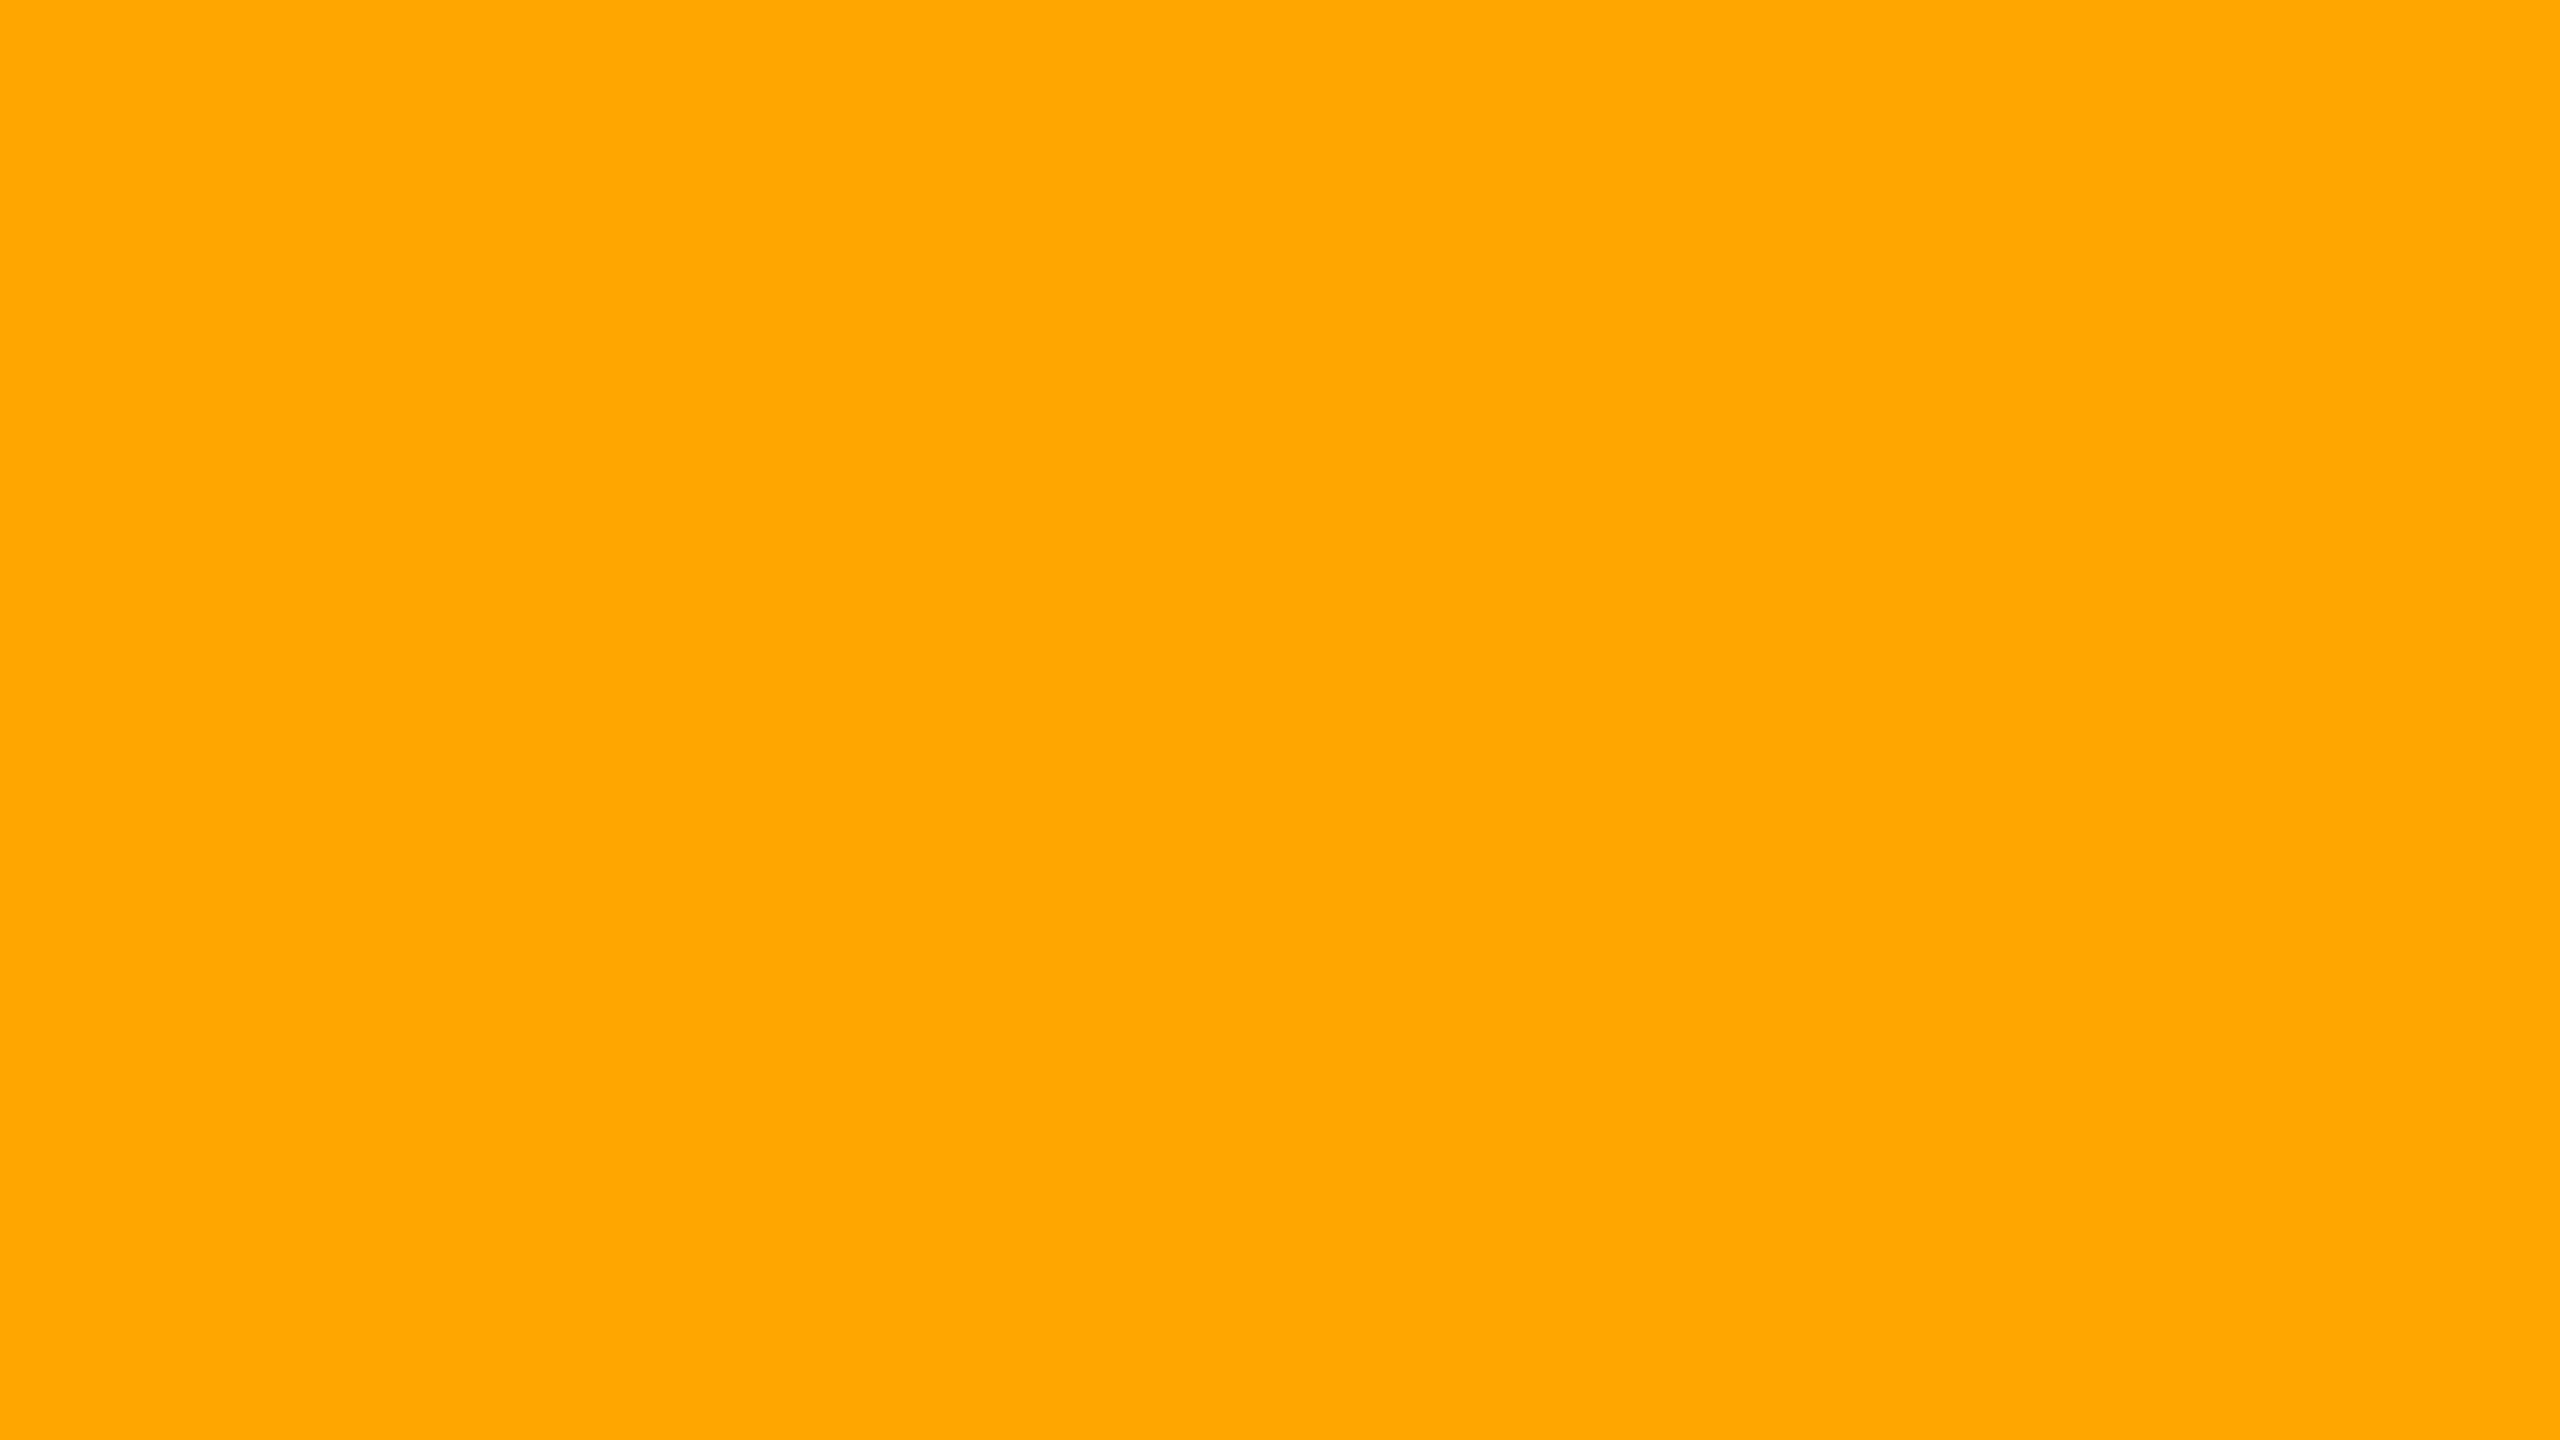 2560x1440 chrome yellow solid